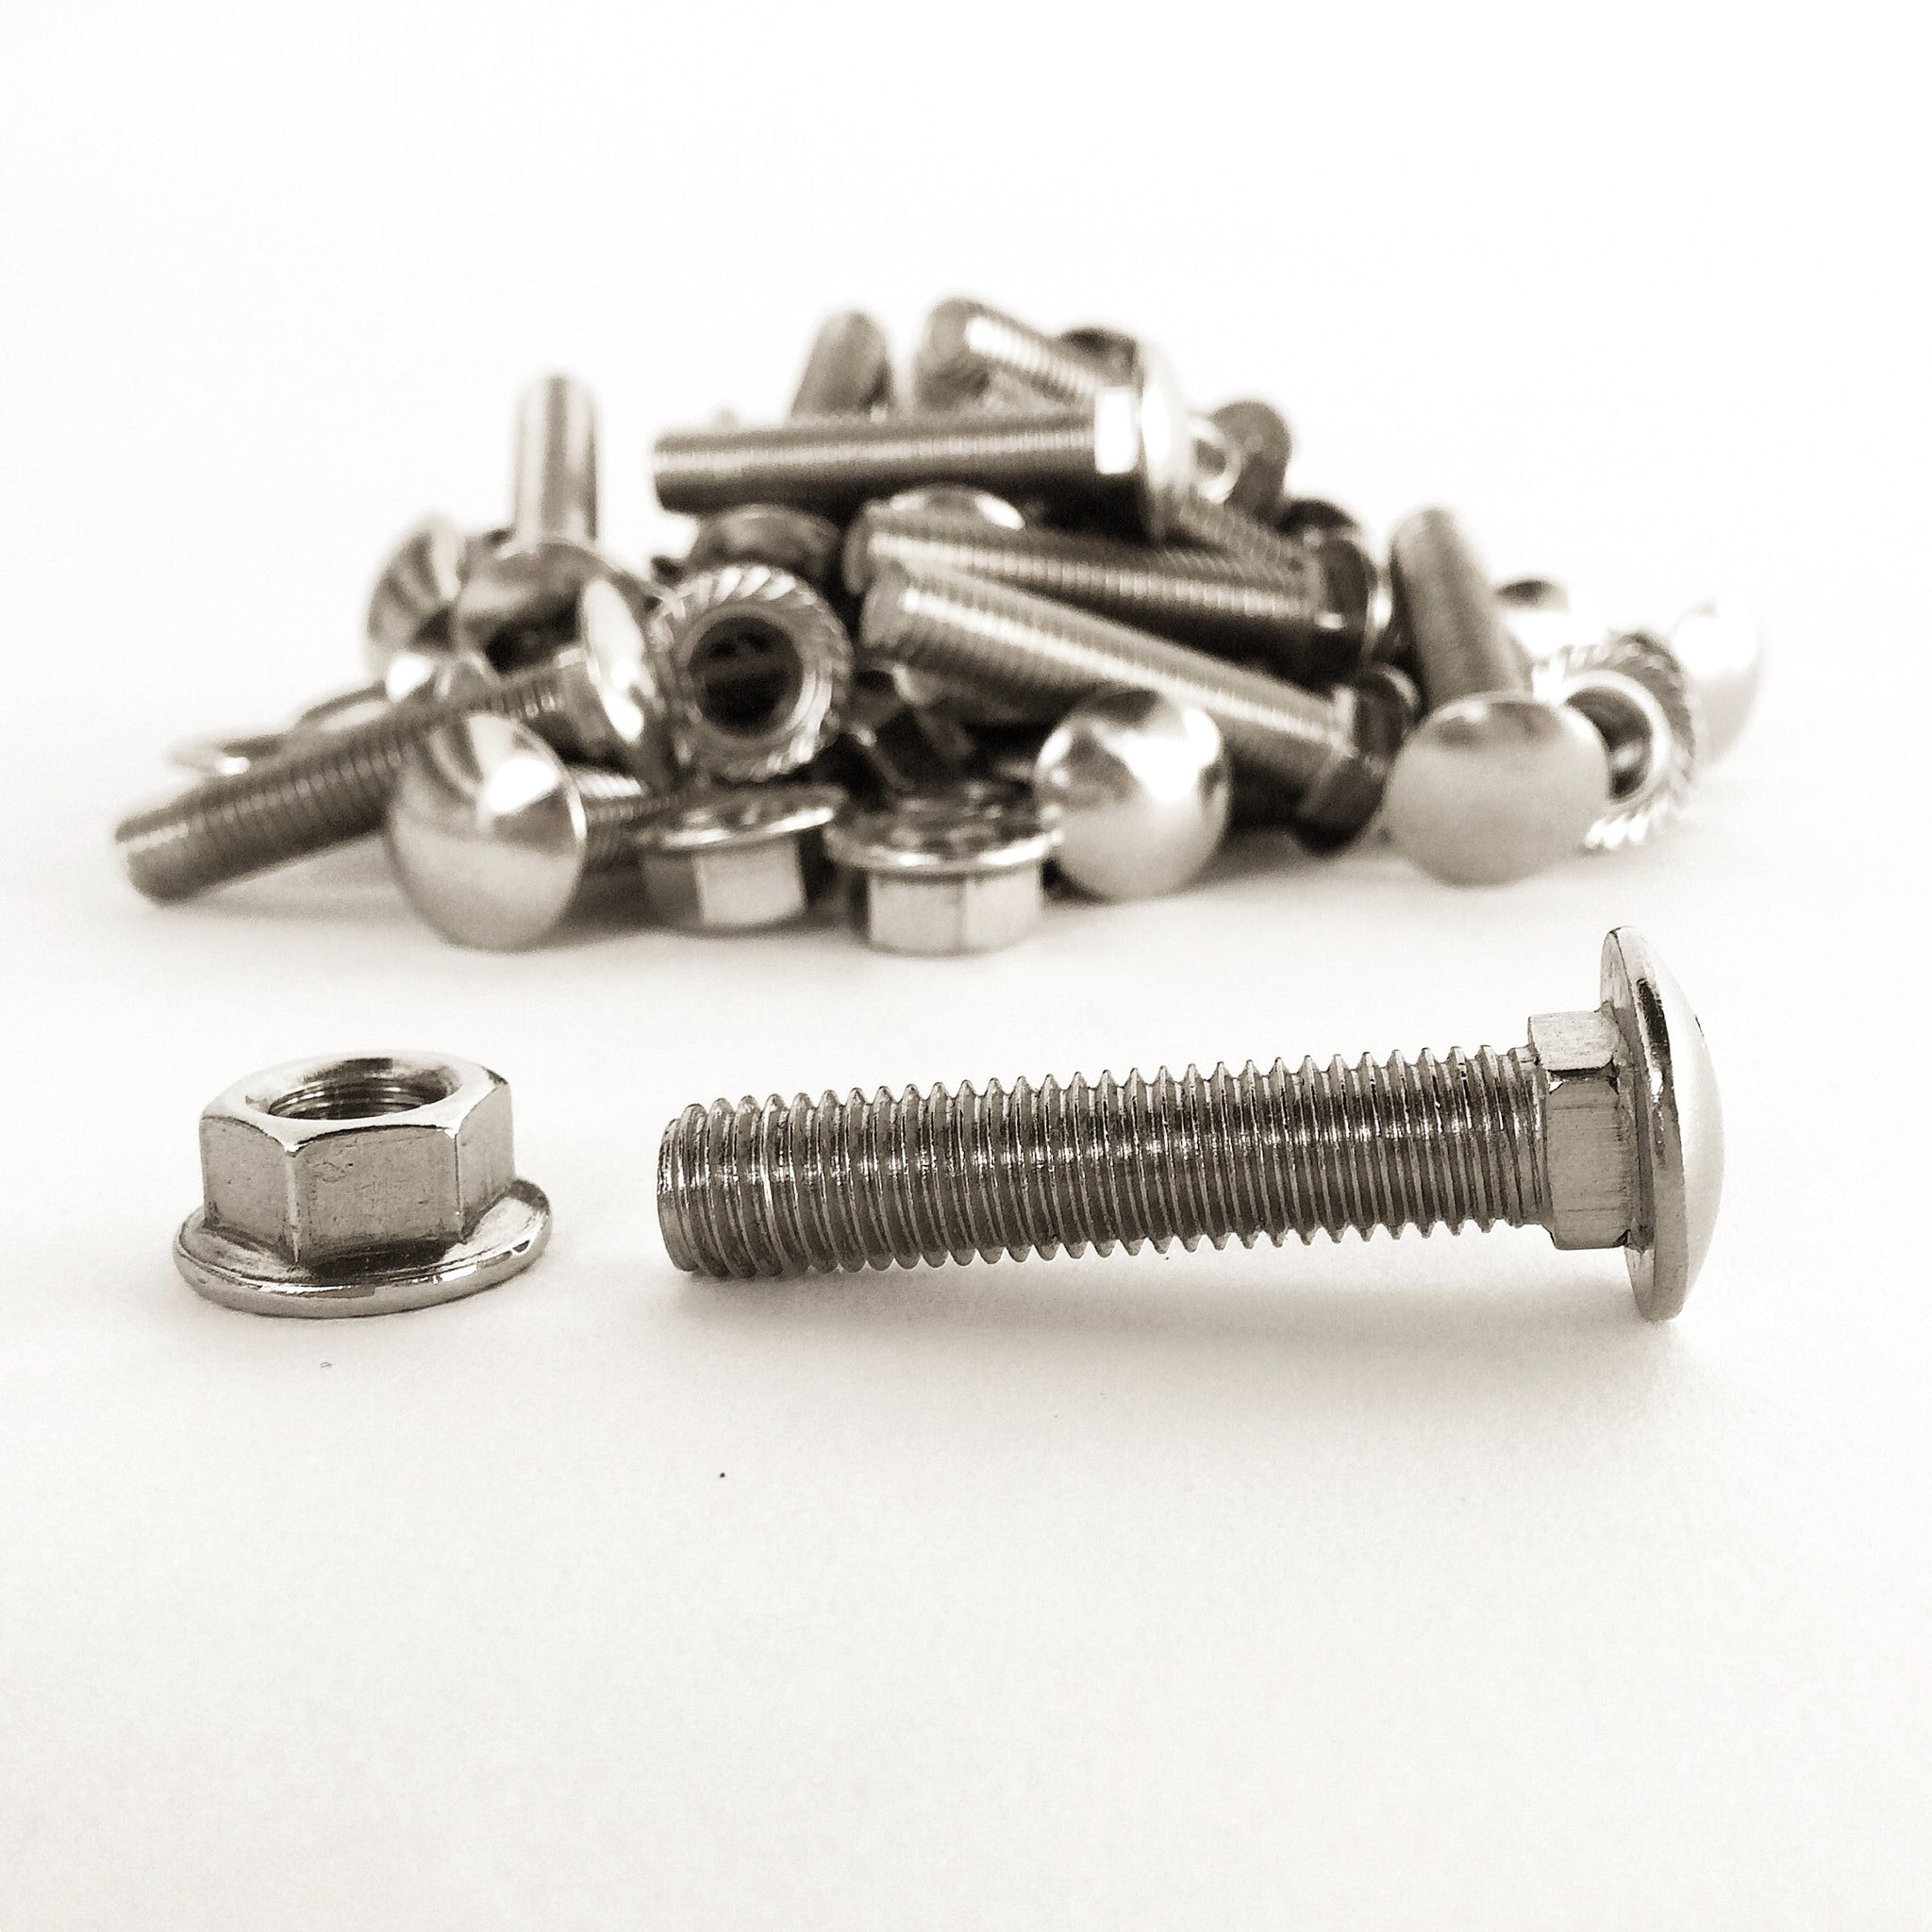 LIFTED EARTH GARDEN BOX HARDWARE - STAINLESS STEEL BOLTS AND NUTS